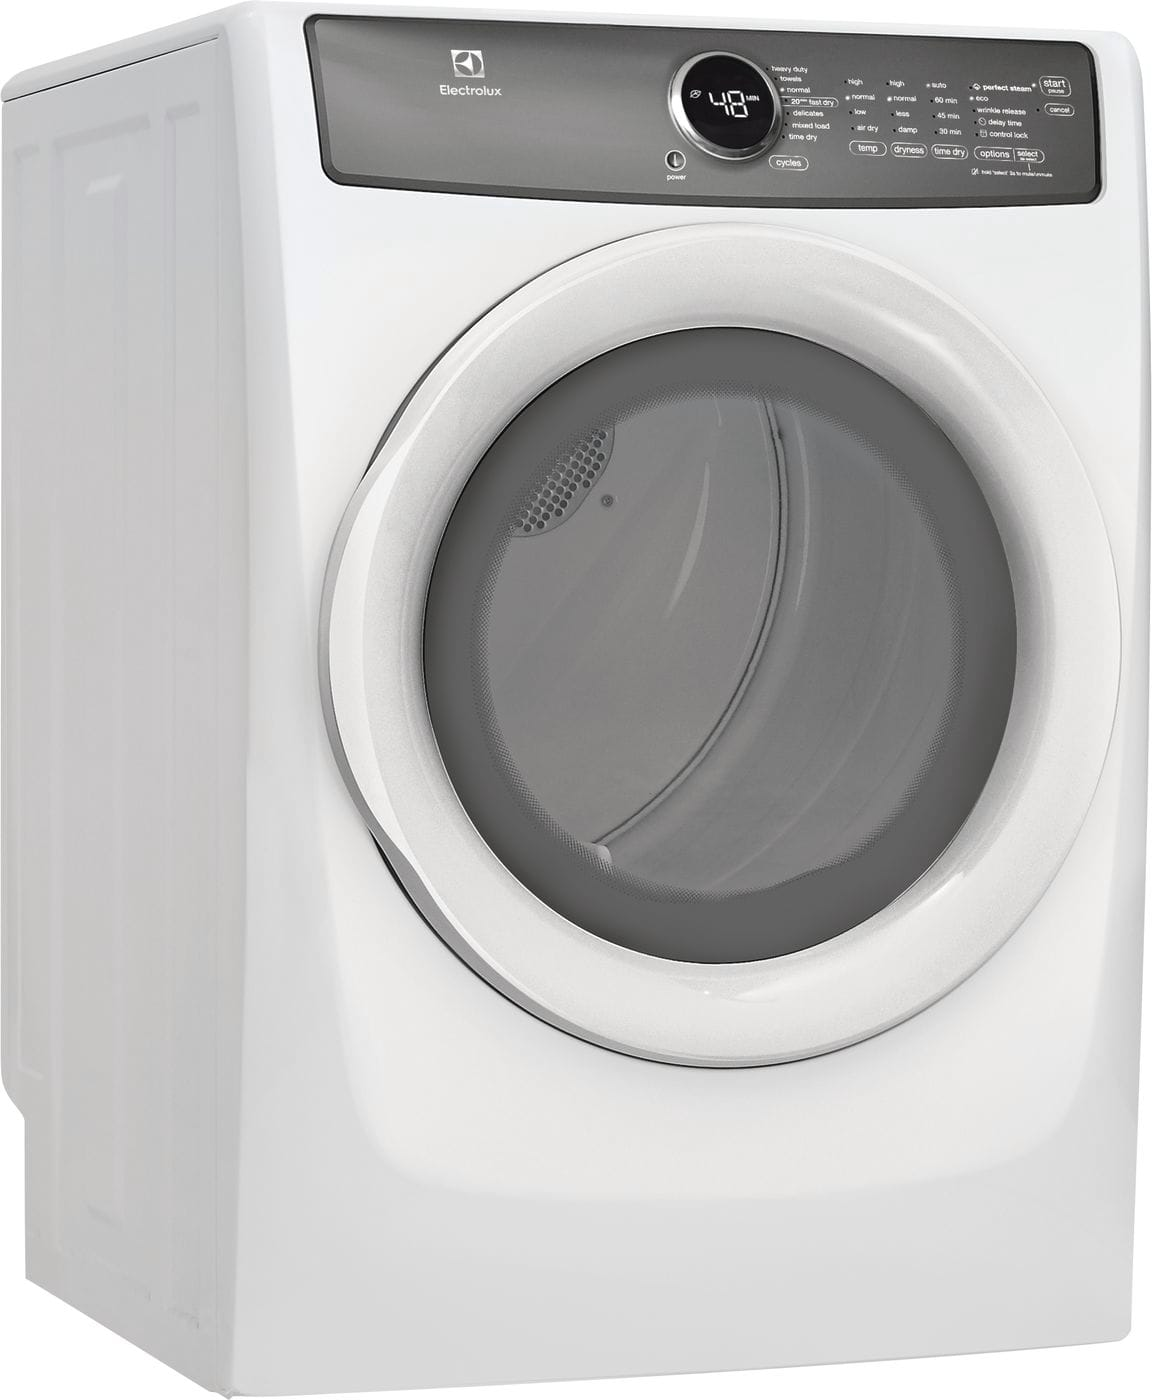 Electrolux Front Load Perfect Steam™ Gas Dryer with 7 cycles - 8.0 Cu. Ft.